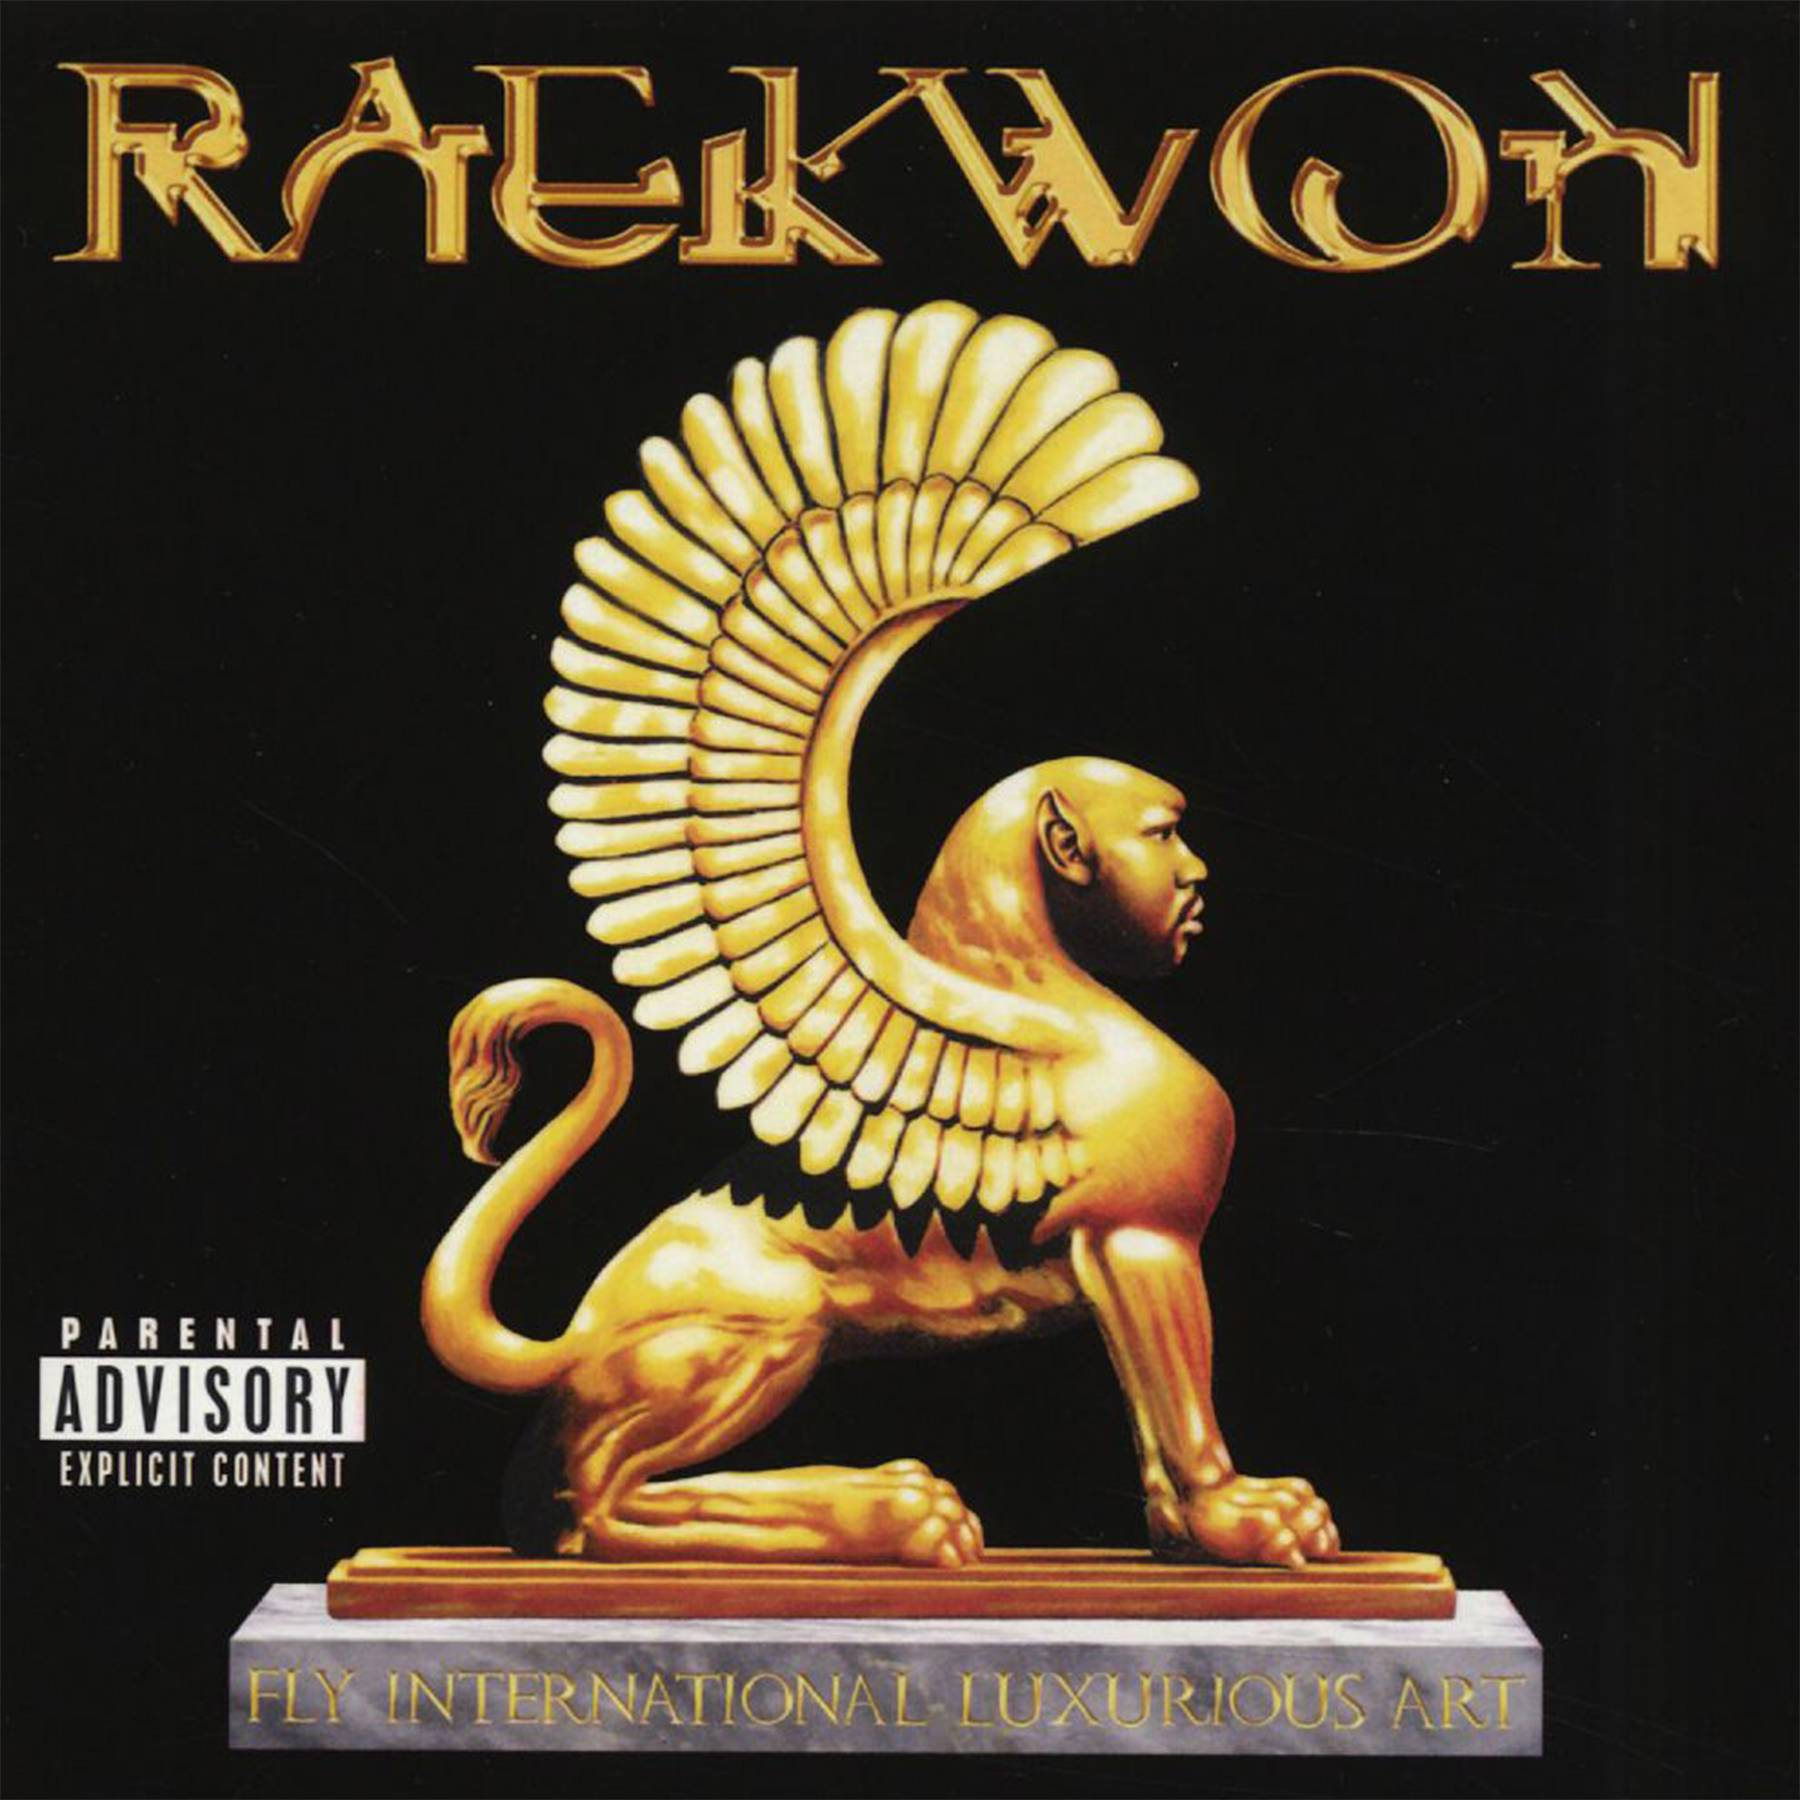 """19. Raekwon ? Fly International Luxurious Art (2015) - The Chef splits the difference between his rugged instincts and his commercial ambitions. Sure, it may take some longtime off-guard to hear Raekwon hit the booth with the linear likes of 2 Chainz, French Montana, and Rick Ross. Their inclusion, however, allows the studied emcee to showcase a more diverse musical palette, uneven moments and all. """"Guns eclectic, flips perfected/Boats flying in, every brake's inspected/The clique's connected, everybody wrist and neck lit,"""" he swings on the Snoop Dogg-featured """"1,2,1,2."""" Like his Wu brother-in-spirit Ghostface (who is featured on the diabolical """"4 in the Morning""""), he's aged quite gracefully. (Photo: Ice H2O / Caroline Records)"""